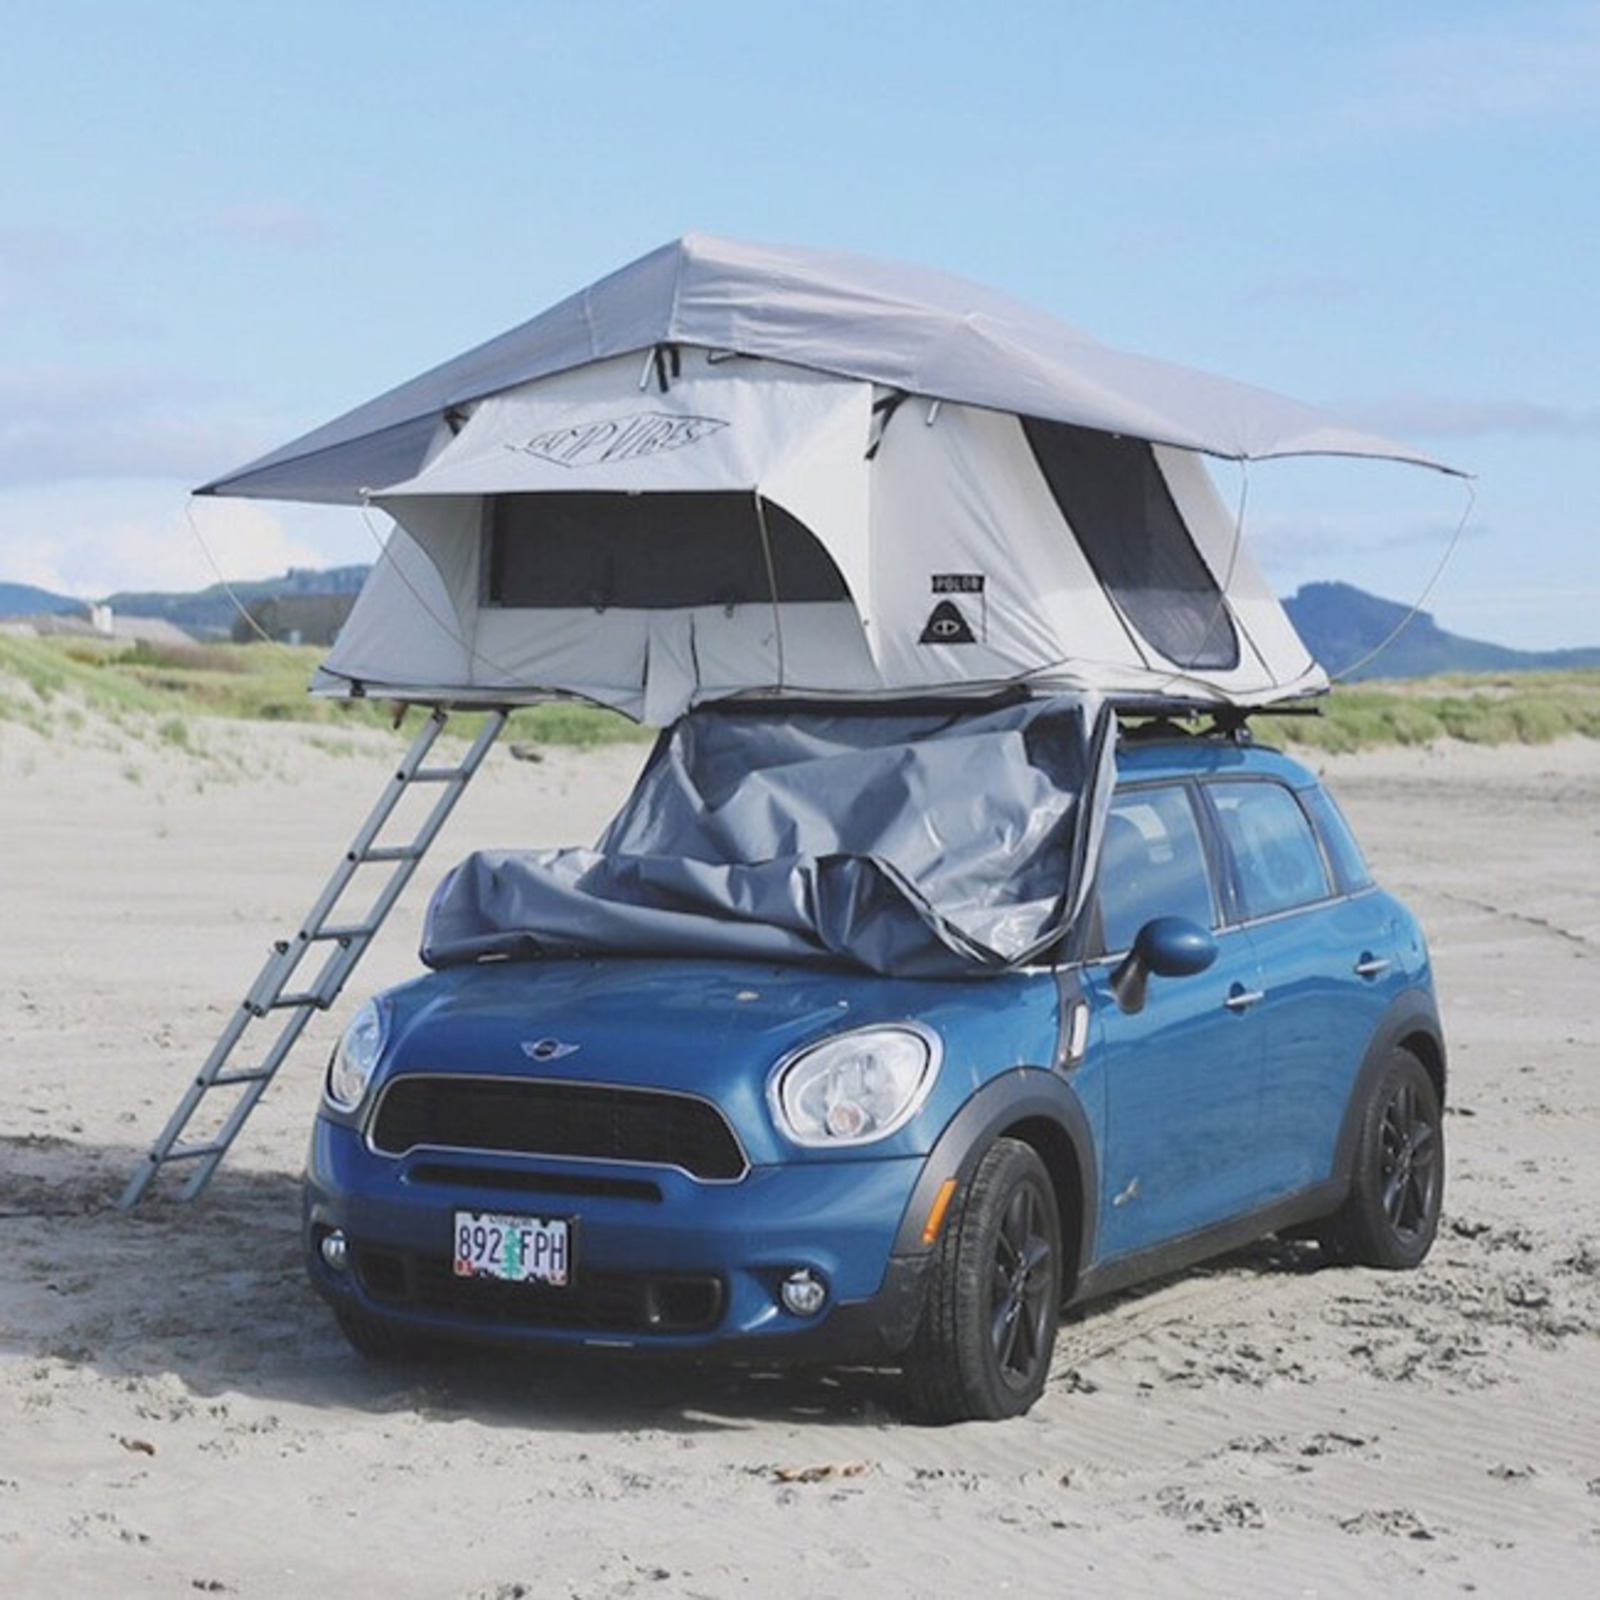 & Three Rooftop Tents for Summer Adventures - Cool Hunting